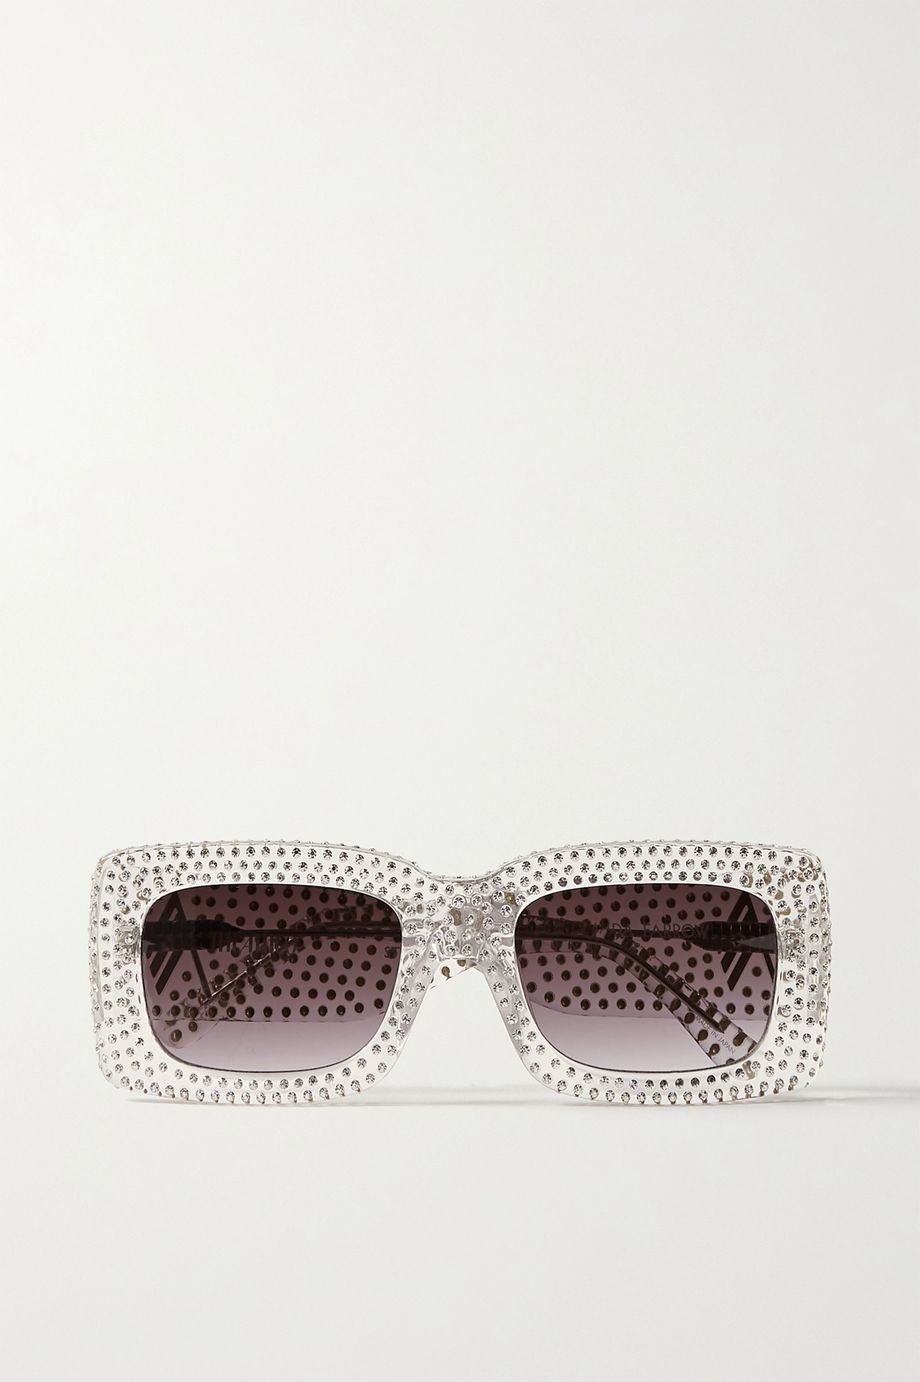 The Attico + Linda Farrow Stella square-frame crystal-embellished acetate sunglasses